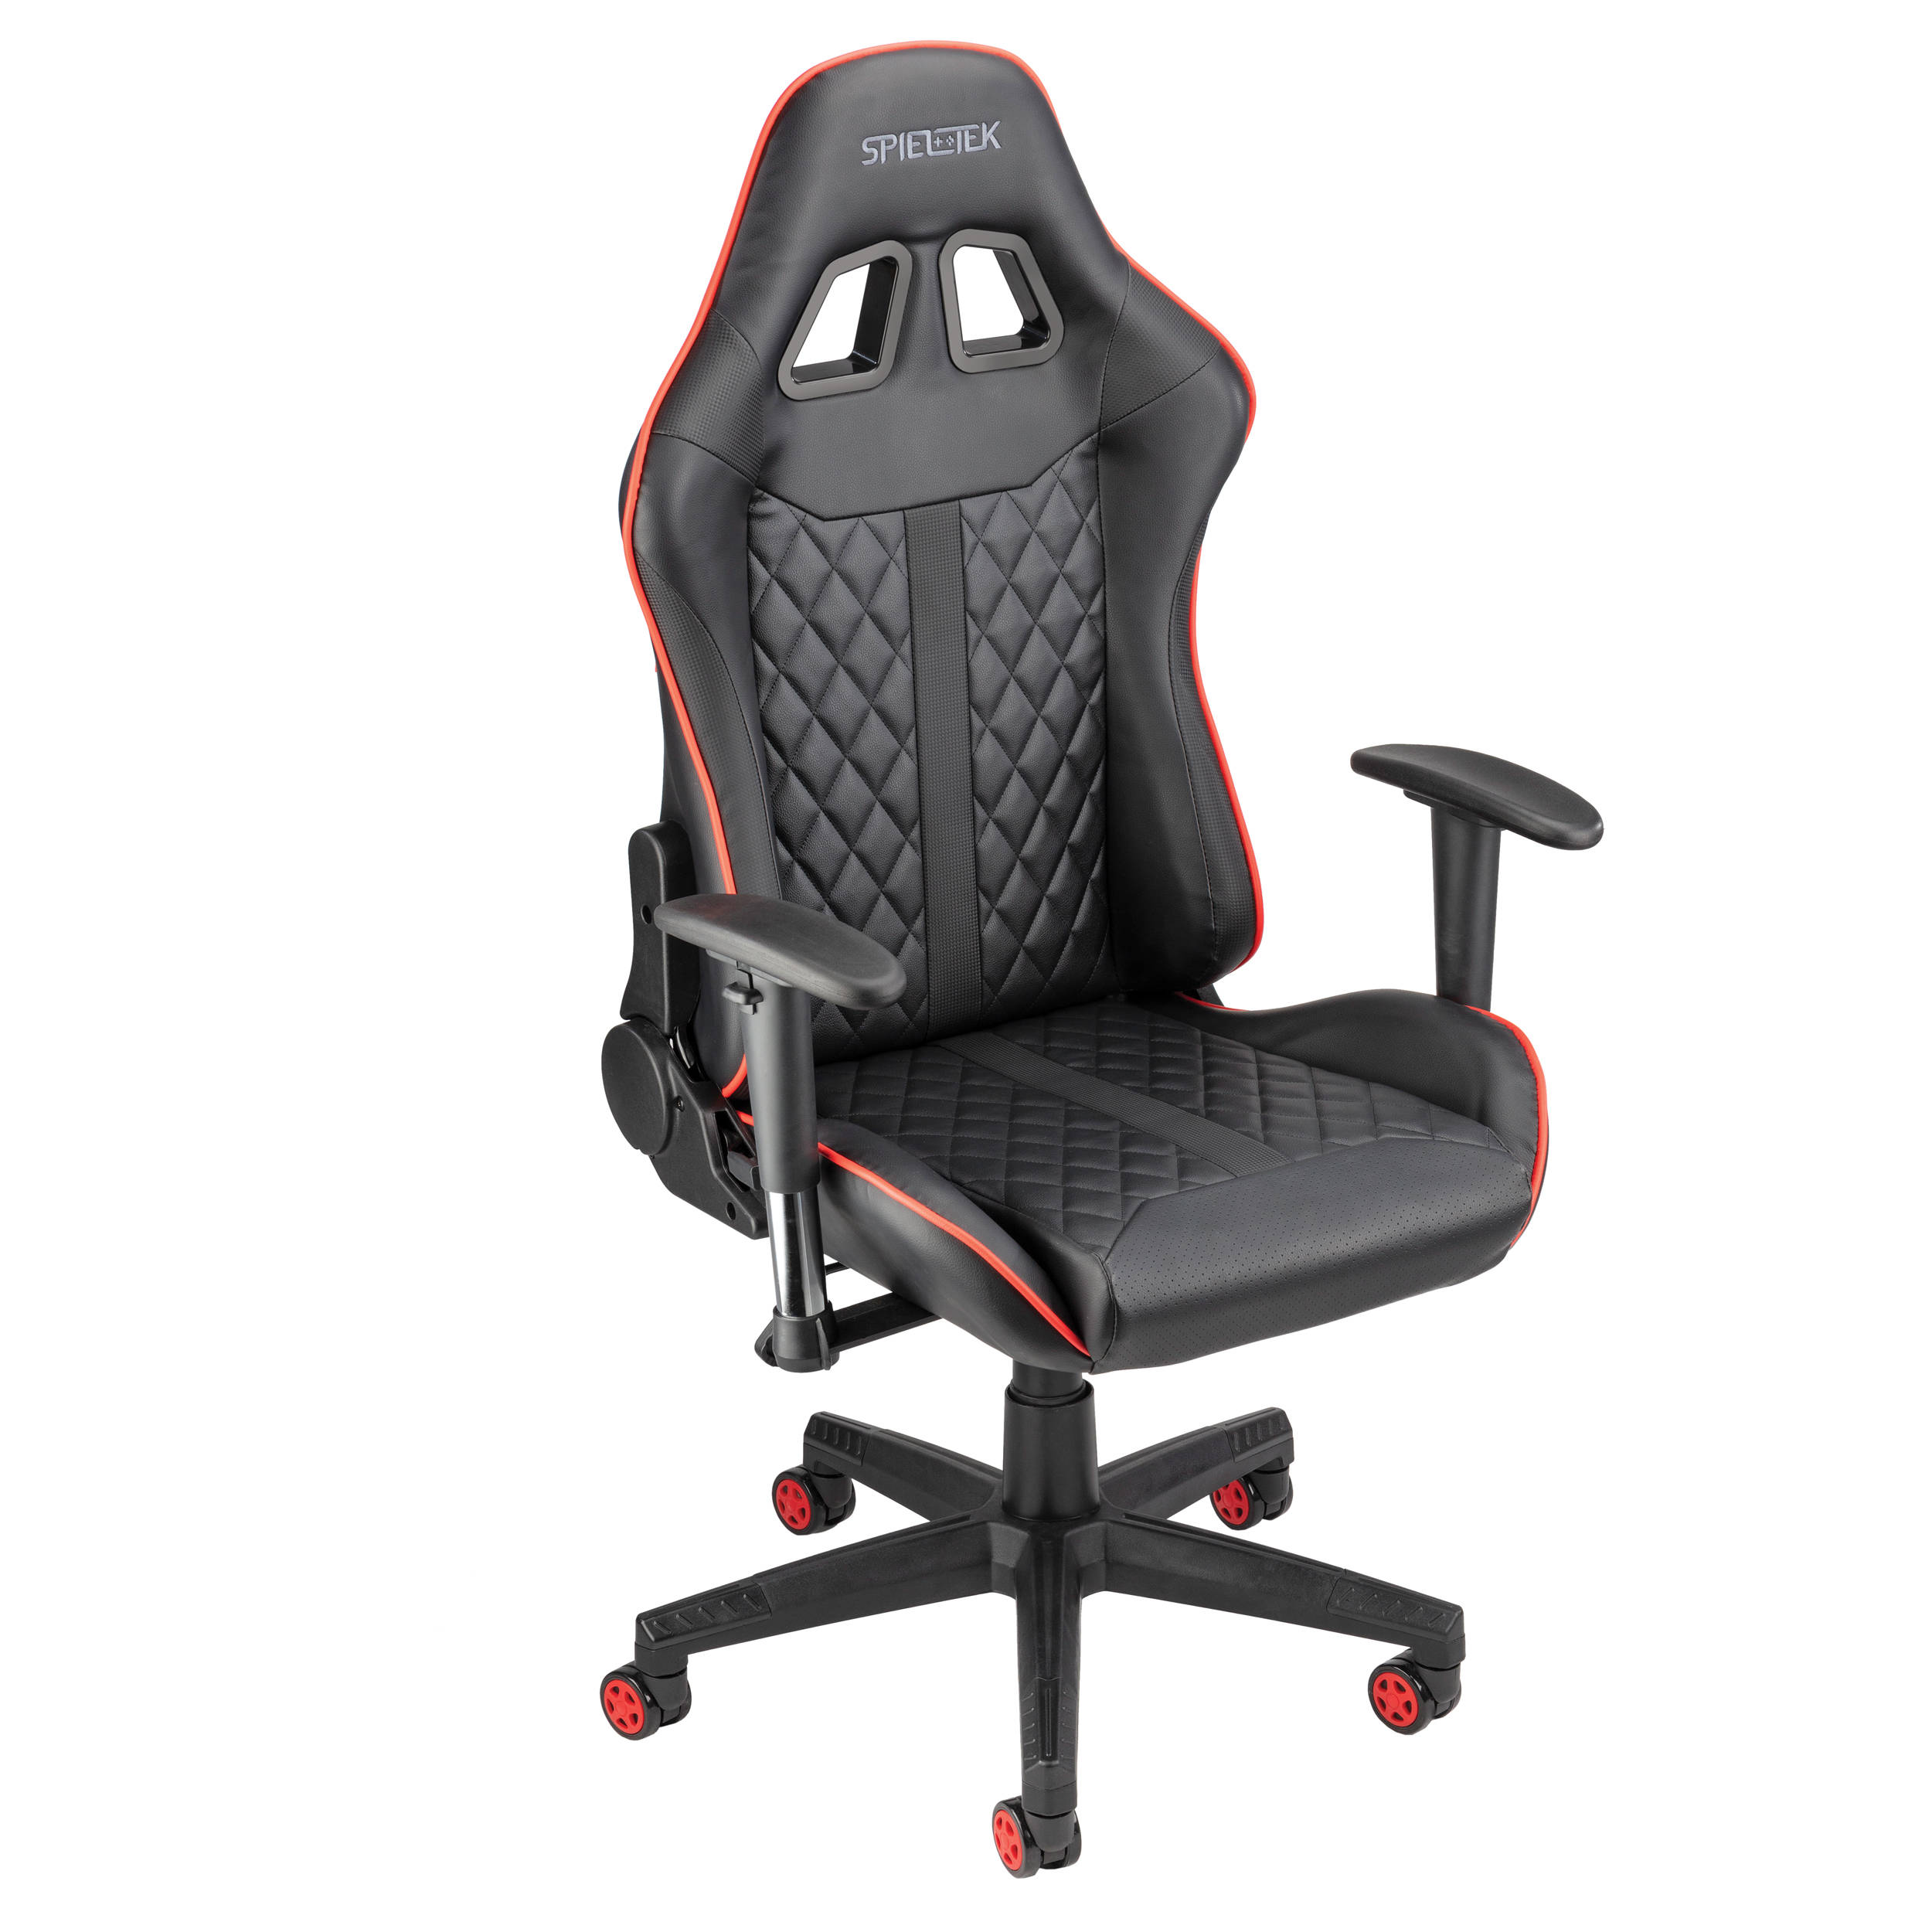 Spieltek 100 Series Gaming Chair Black Red Gc 100l Br